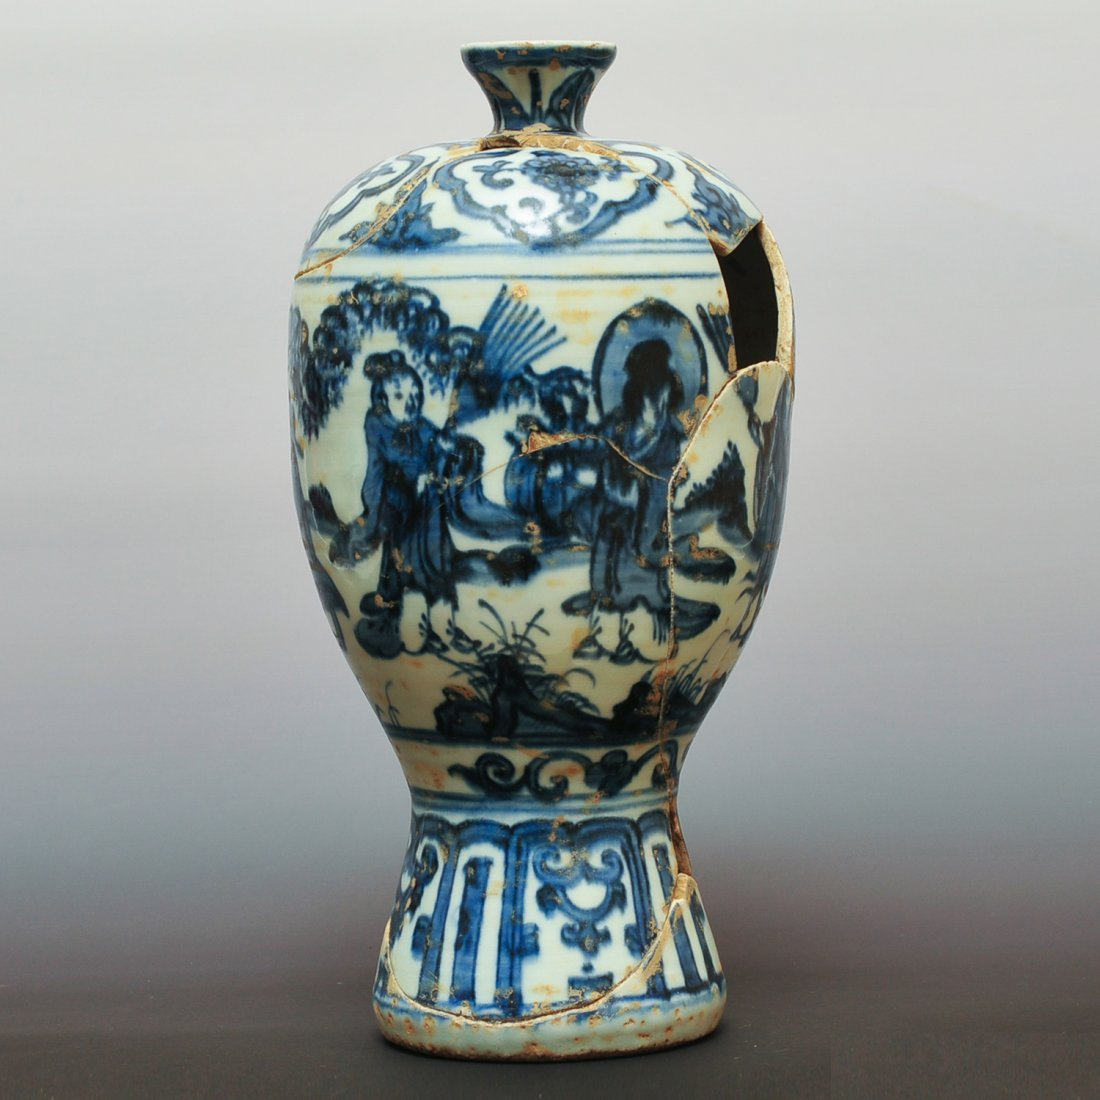 Ming Dynasty, A Chinese Blue and White Porcelain Vase.